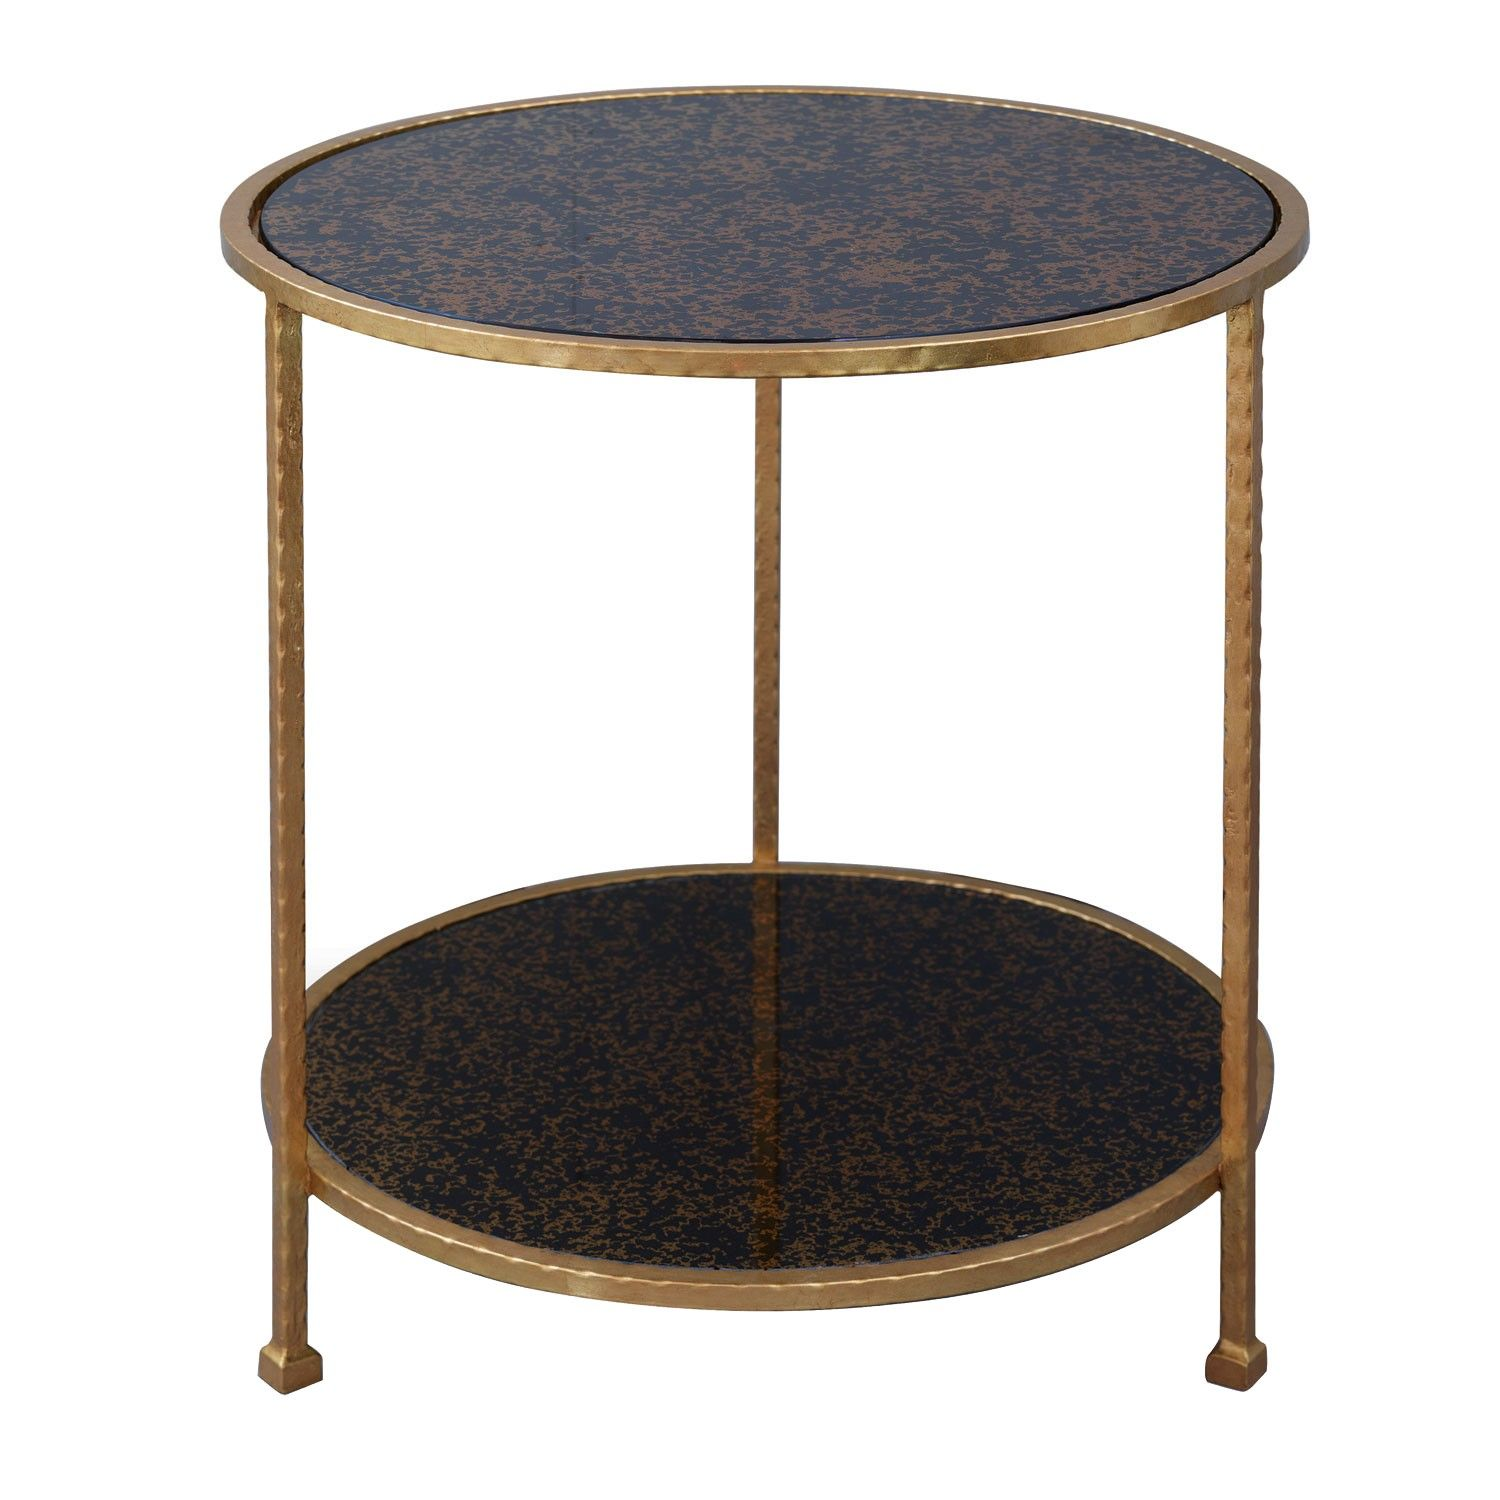 port harper gold table hulme furniture round accent our end use next sofa with lamp between two chairs made leaf cast metal frame features modern crystal lamps rustic gray